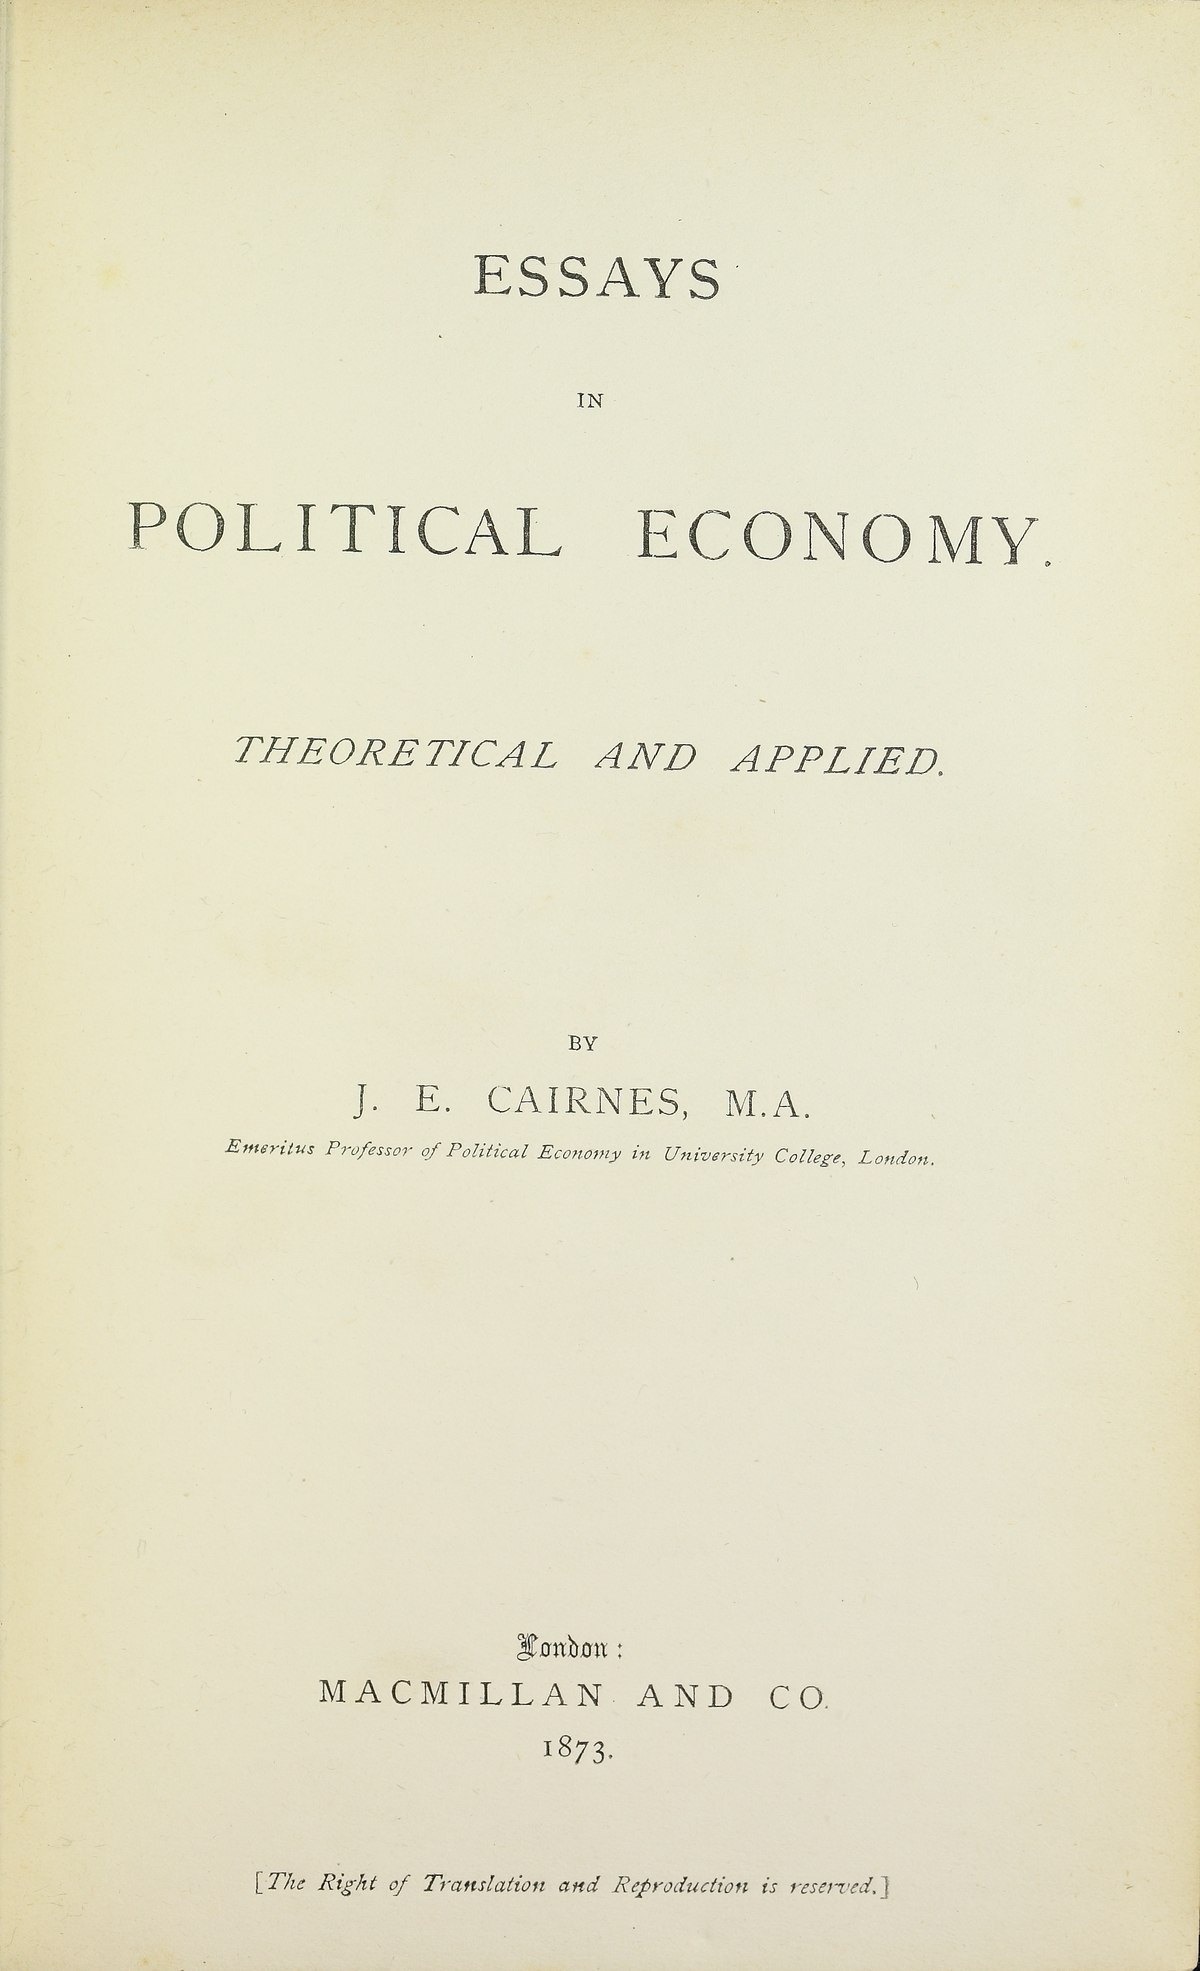 essays in political economy leslie Gdp now matters more than force a us foreign policy for the age of economic power.